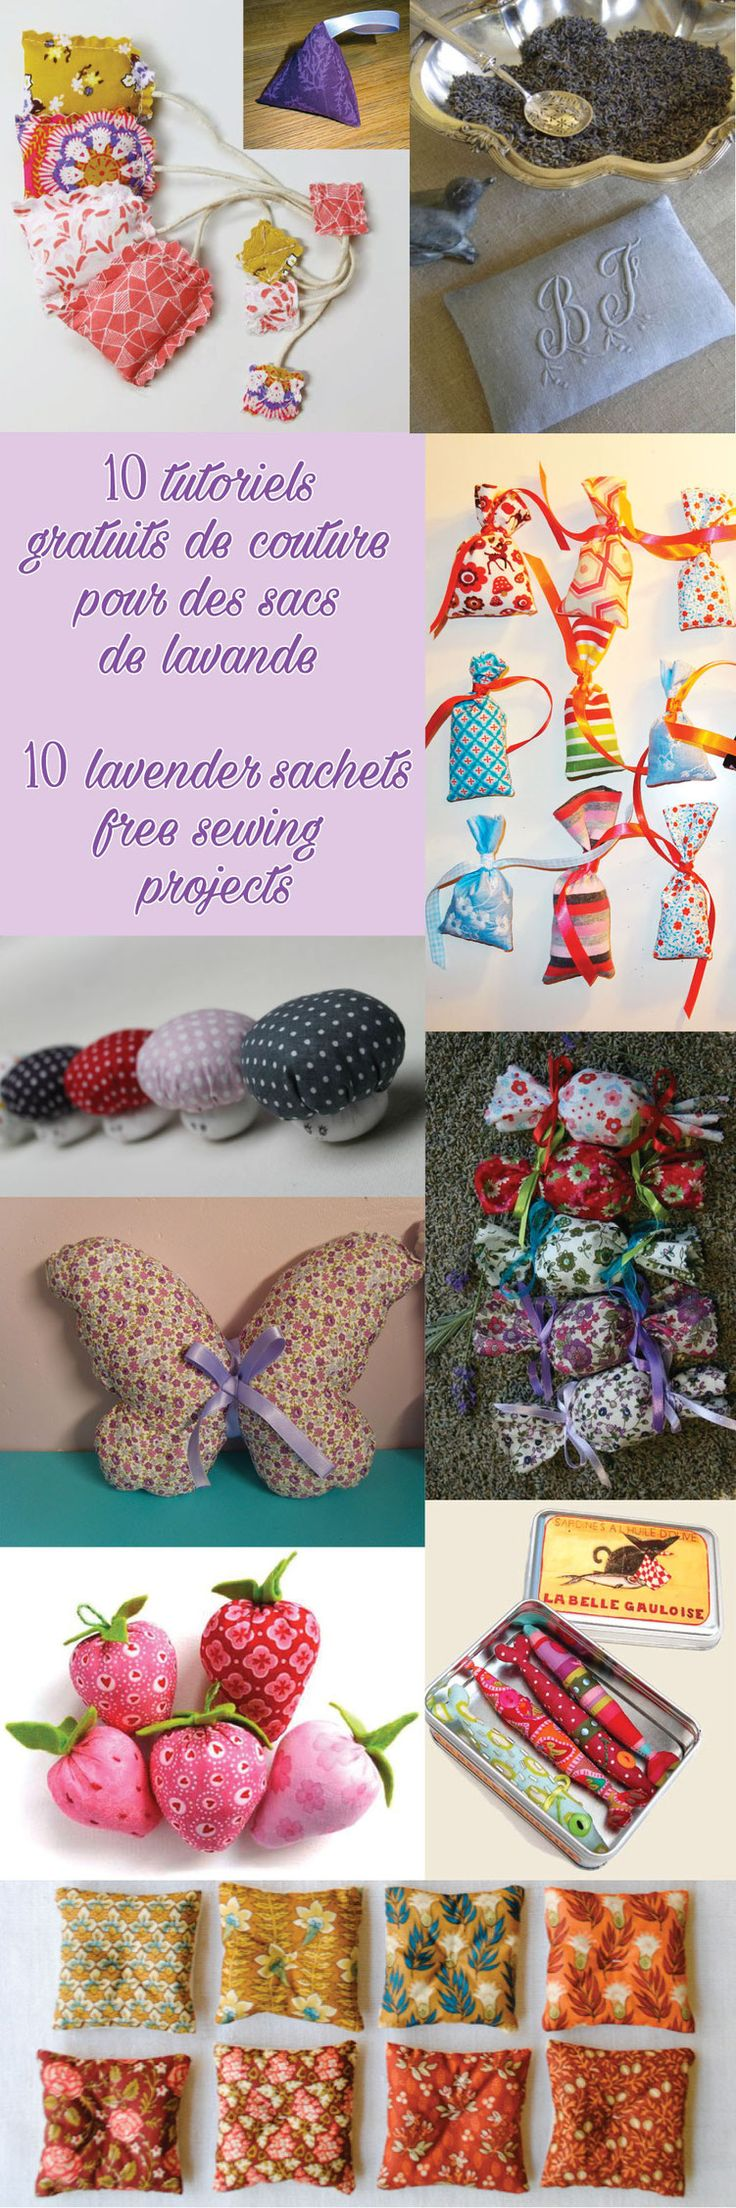 10 tutoriels gratuits de couture pour sacs de lavande - 10 lavender sachets free sewing projects - DIY - Tutorial - Patterns - ideas - BizBizHandMade www.facebook.com/BizBizHandmade